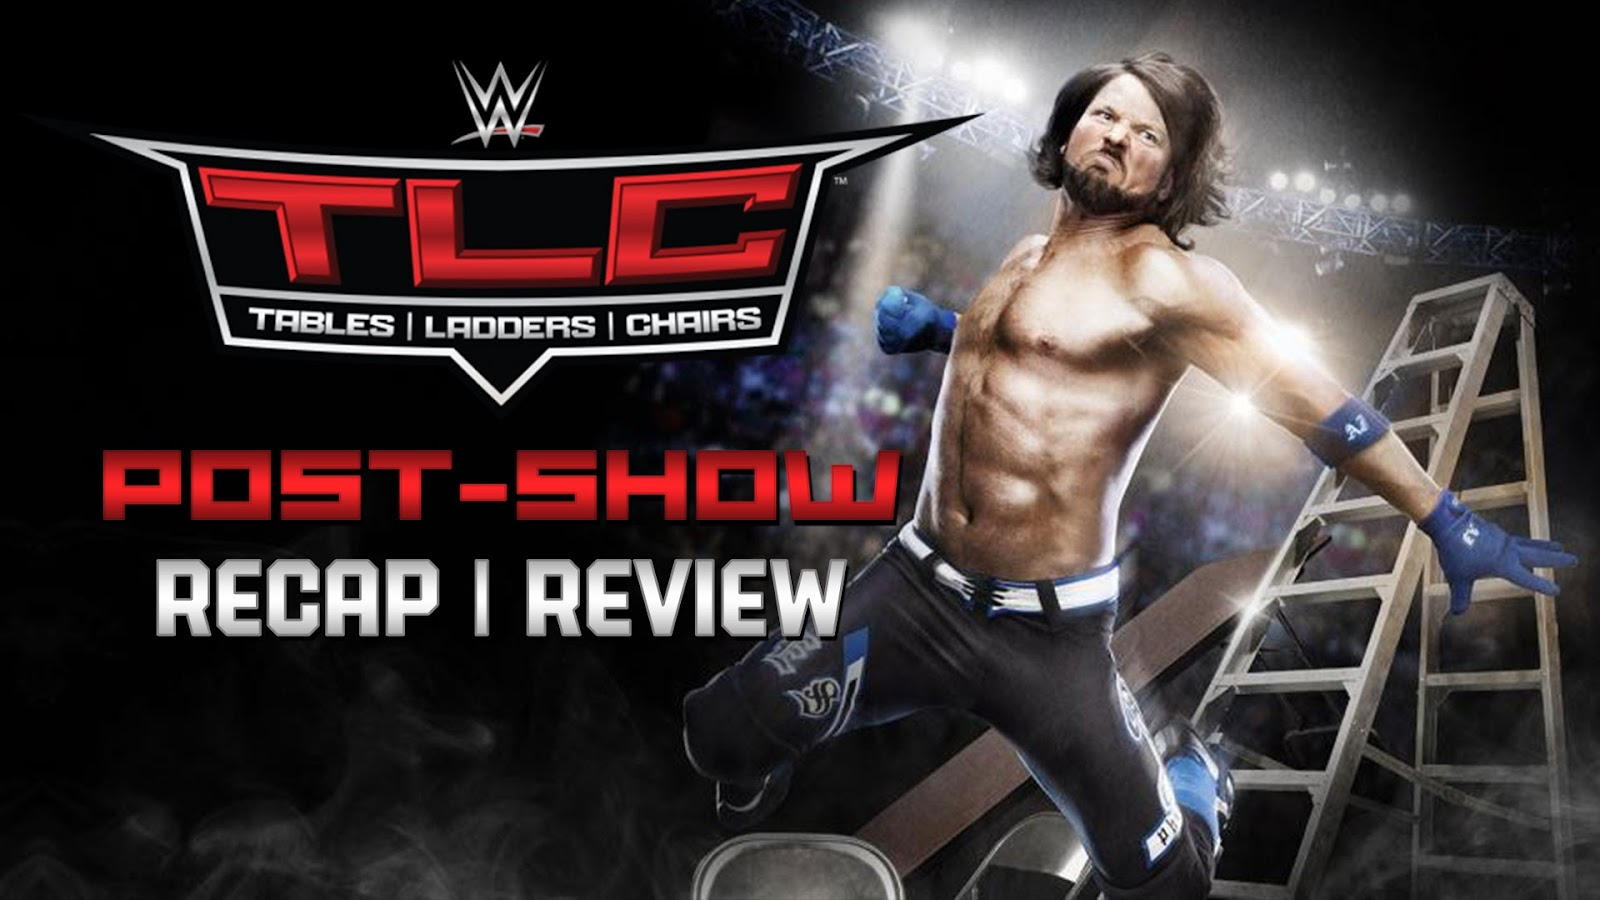 WWE TLC 2016 Recap and Review Podcast